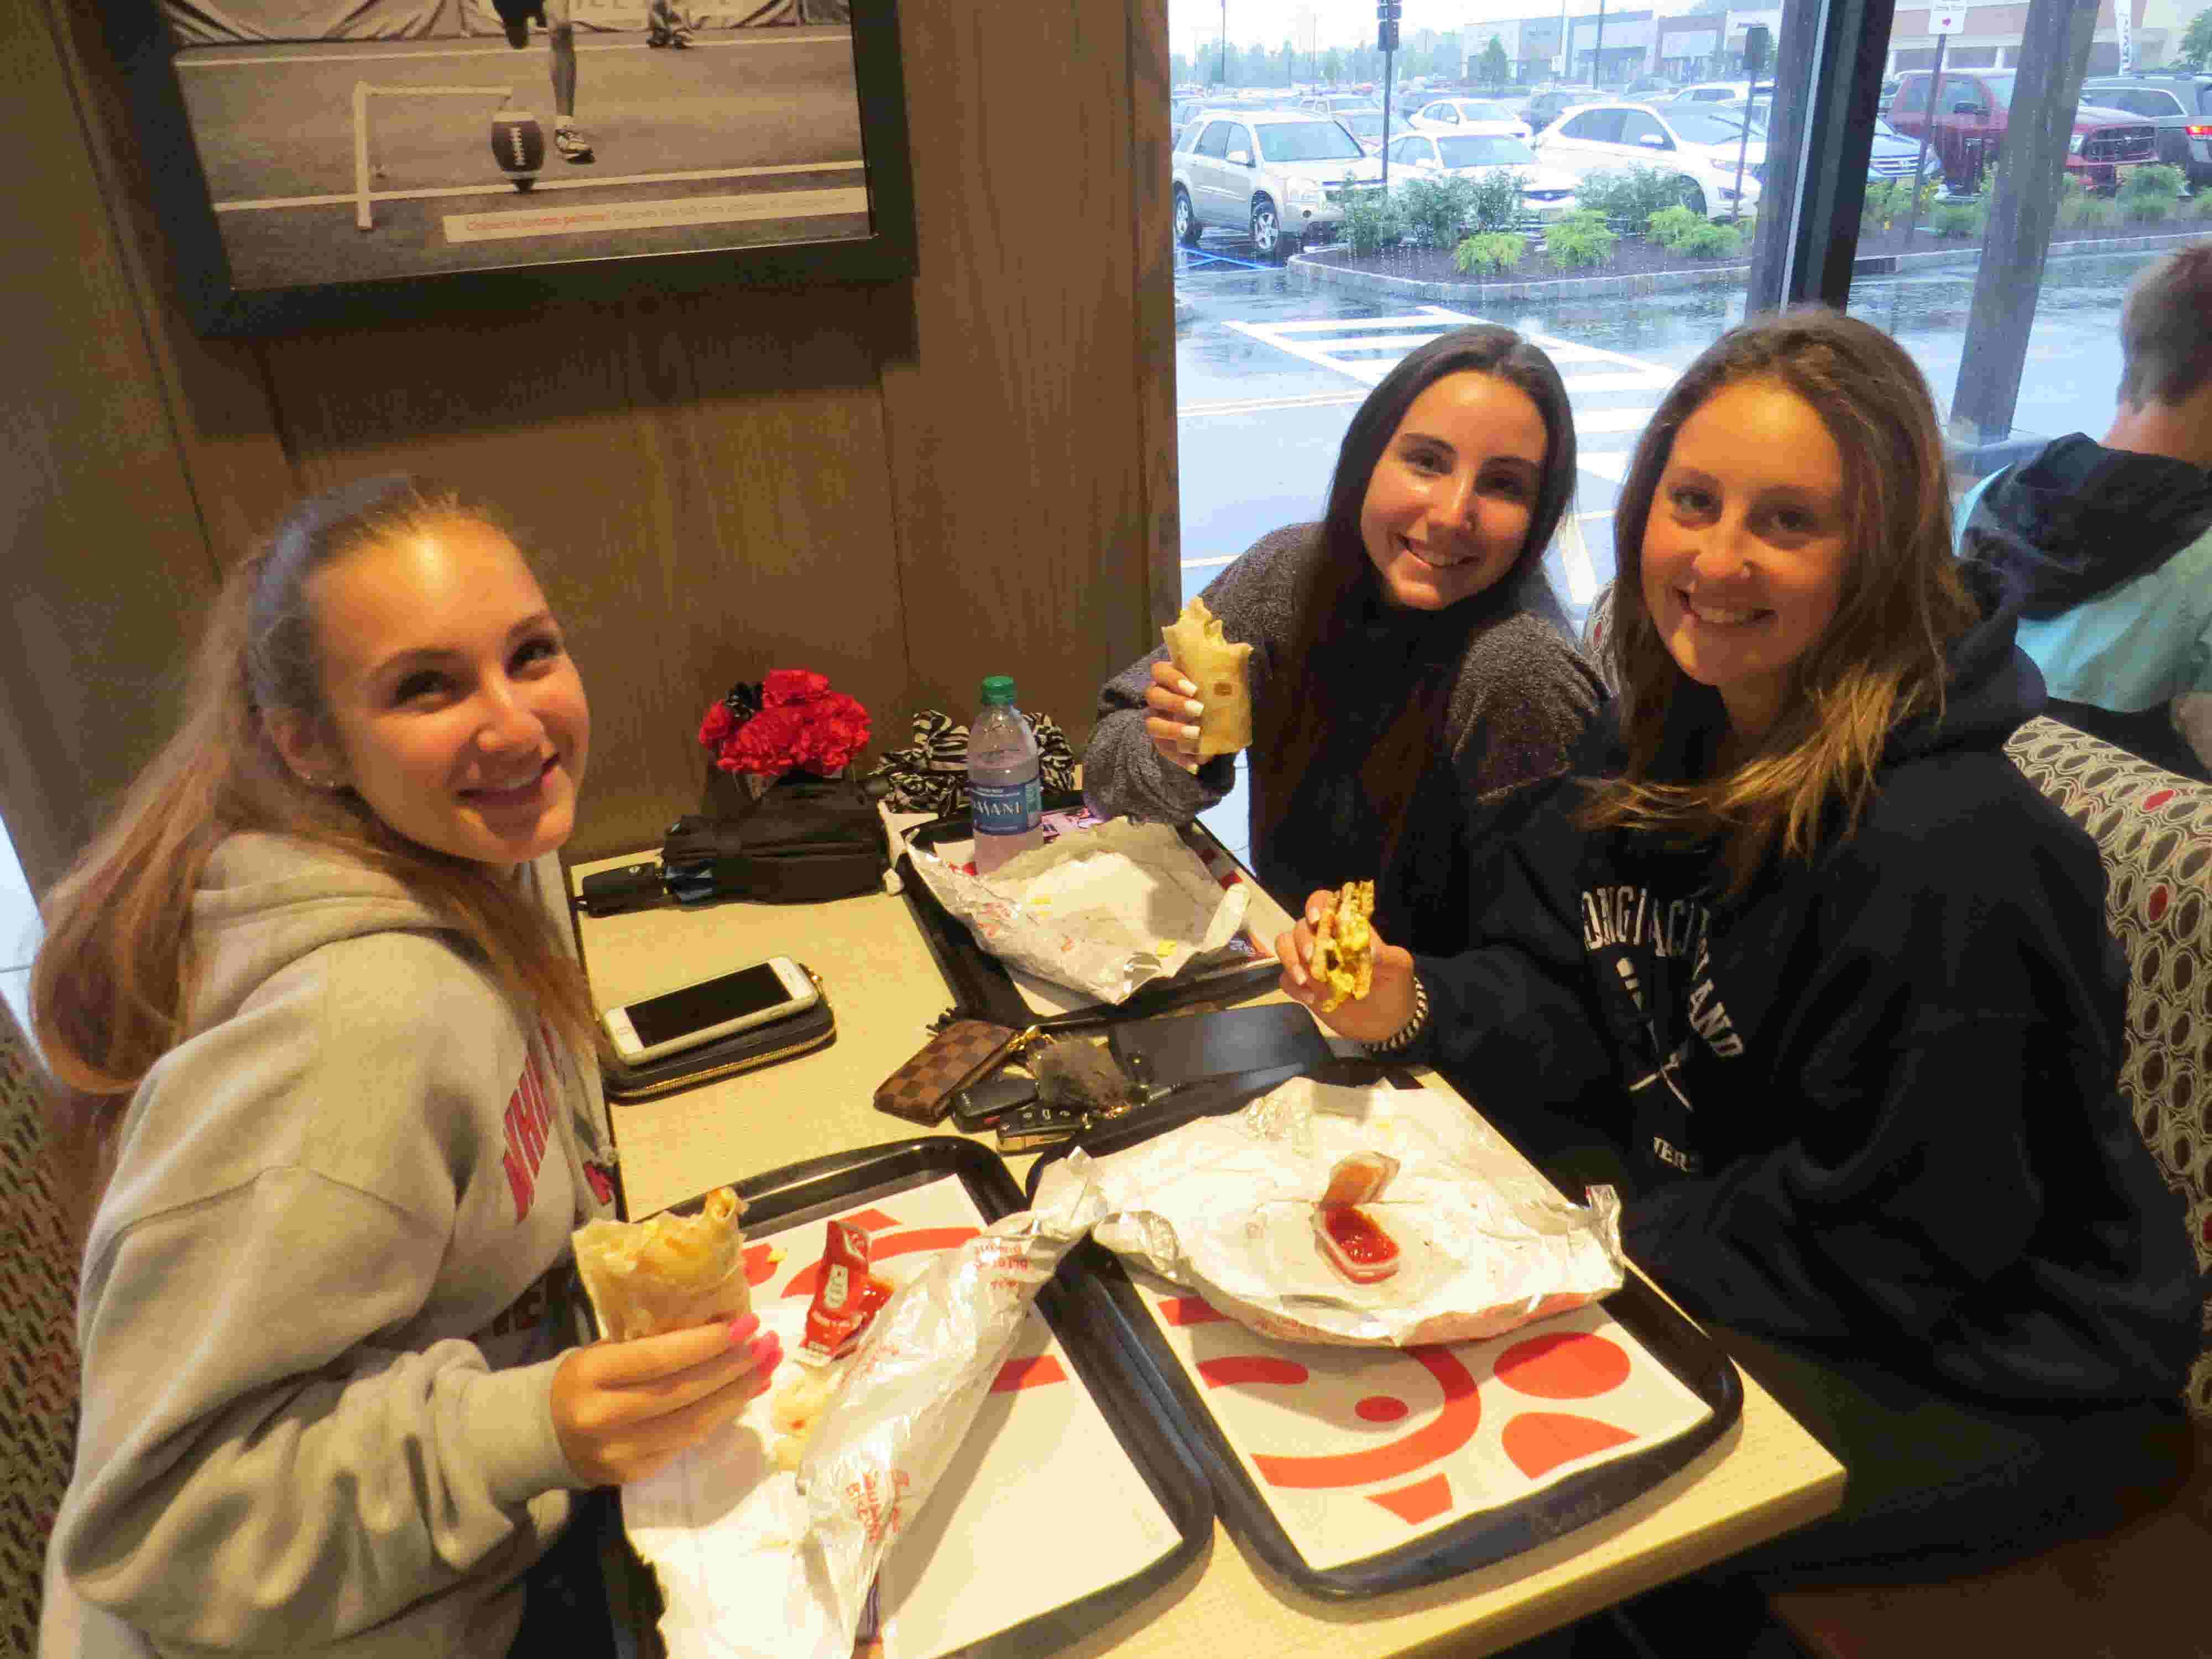 Worth the wait? People pulled all-nighter for chance at free Chick-fil-A in Morris Plains